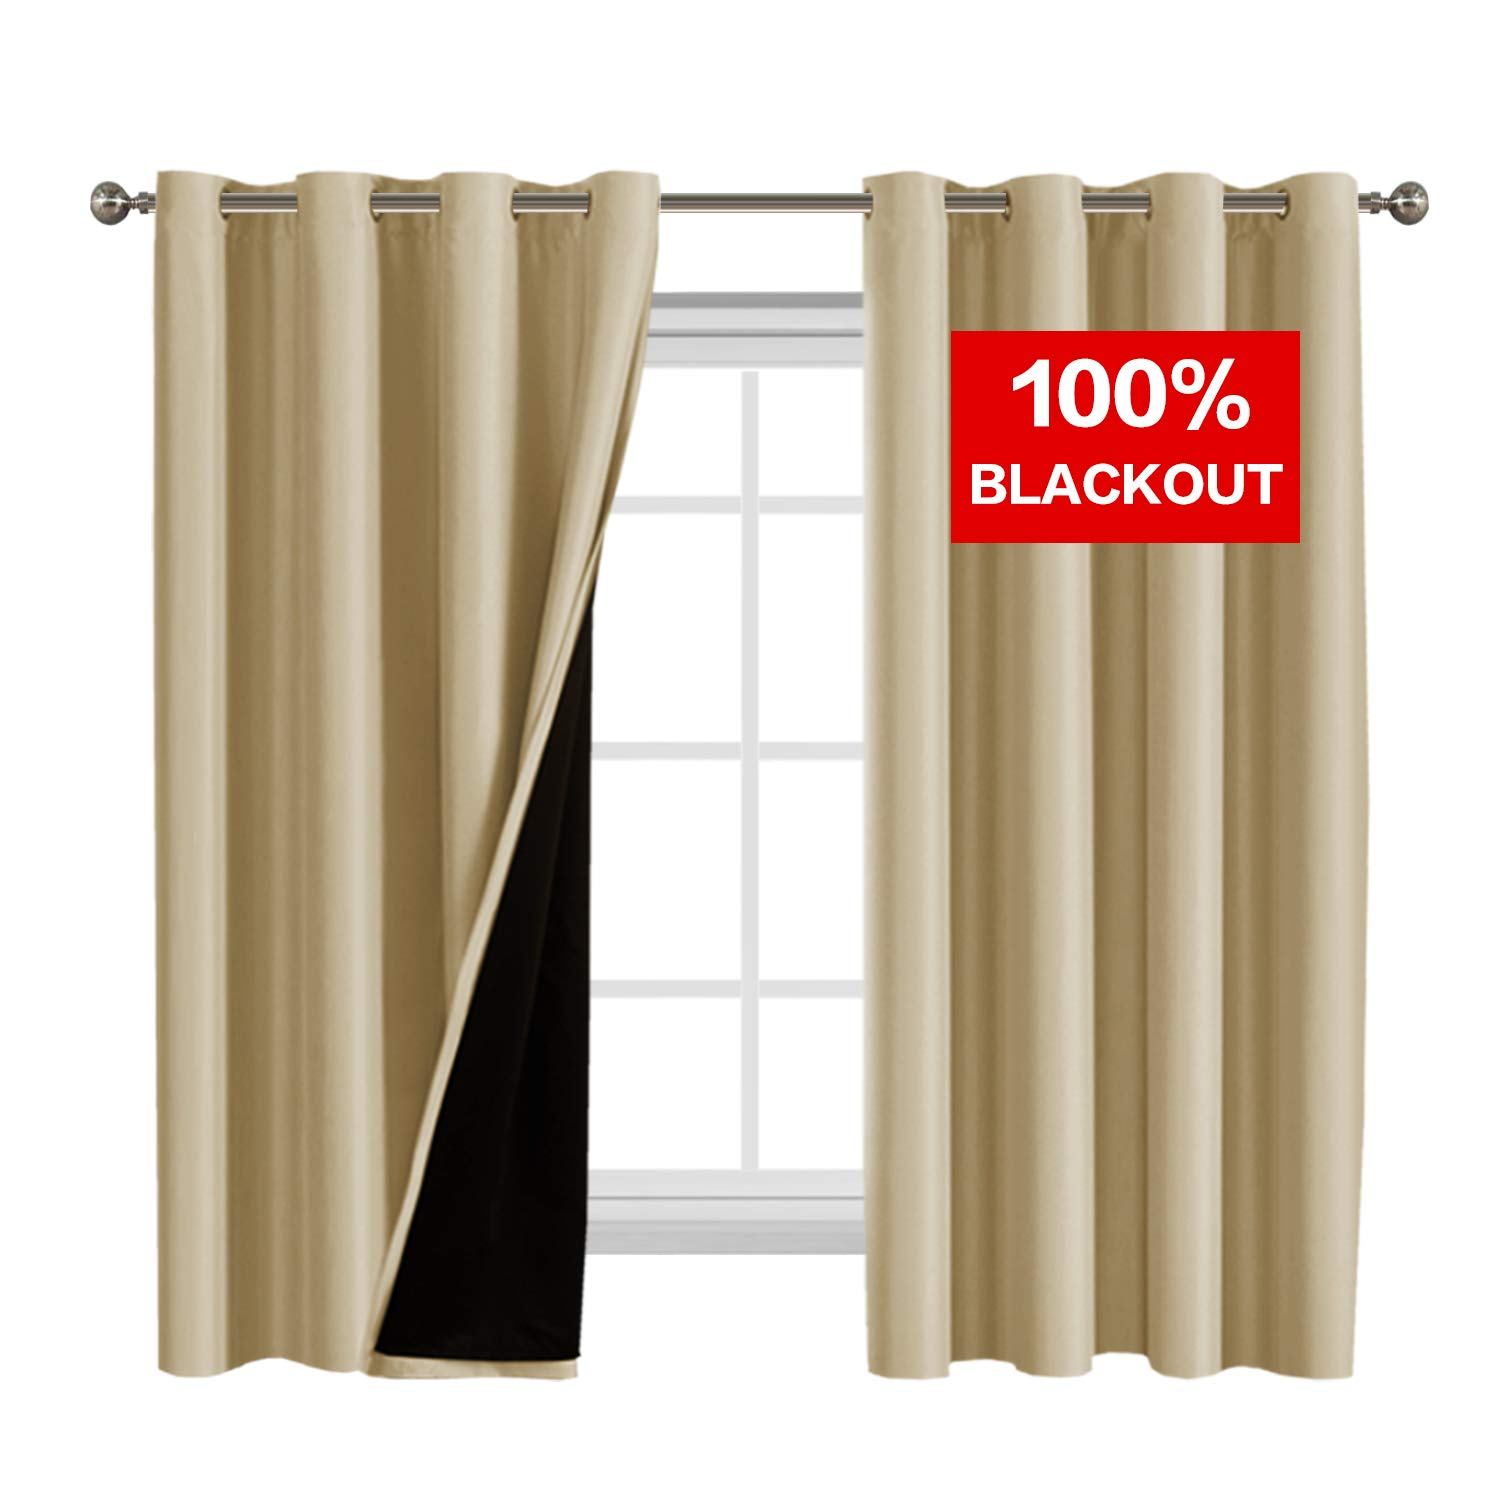 Flamingo P Full Blackout Wheat Curtains Faux Silk Satin with Black Liner Thermal Insulated Window Treatment Panels, Grommet Top (52 x 63 Inch, Set of 2)